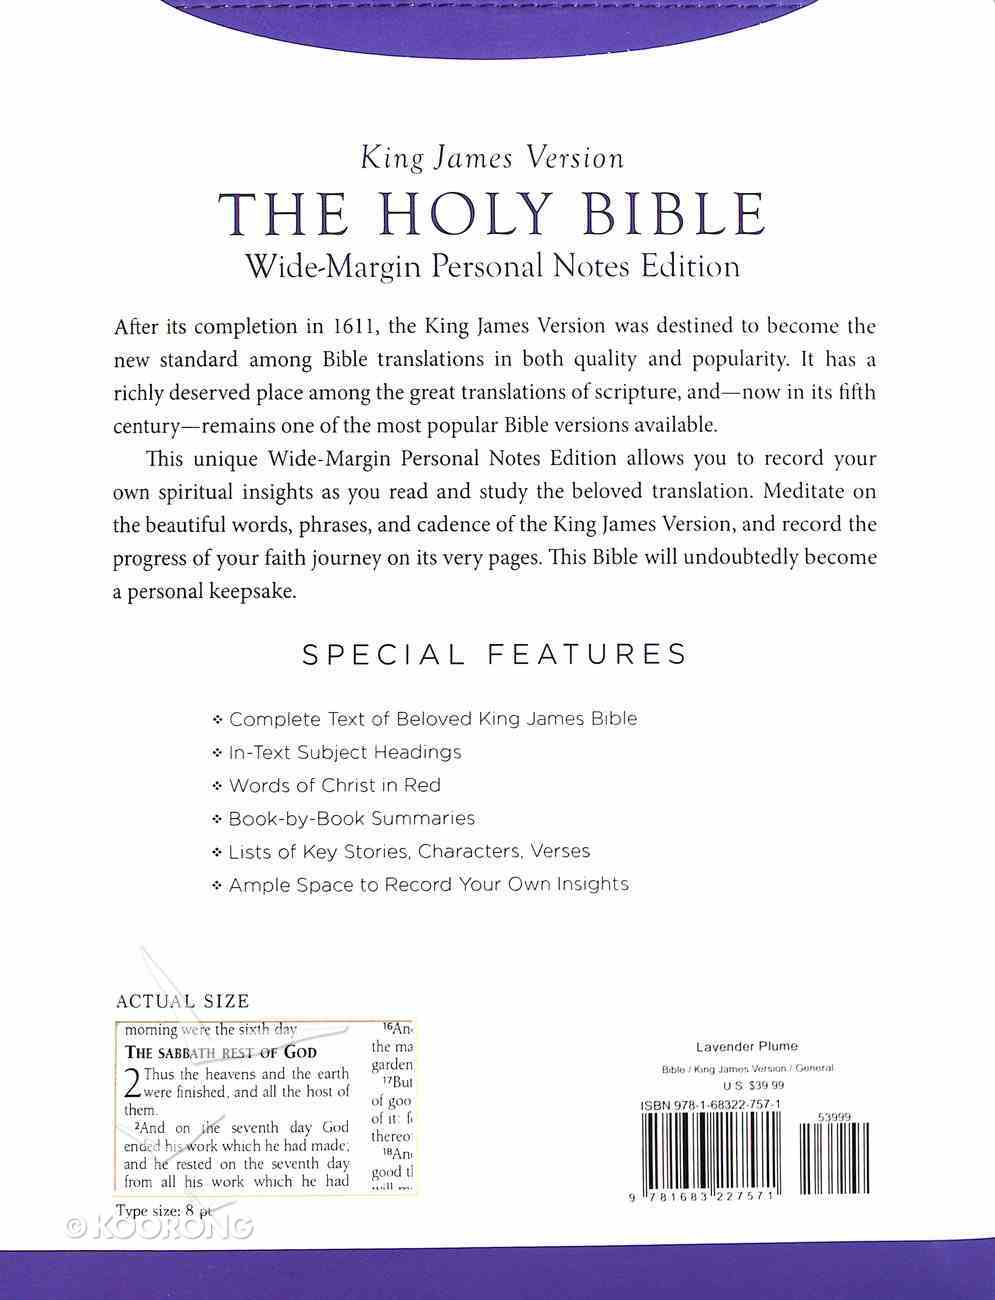 KJV Holy Bible Wide-Margin Personal Notes Edition Lavender Plume Imitation Leather